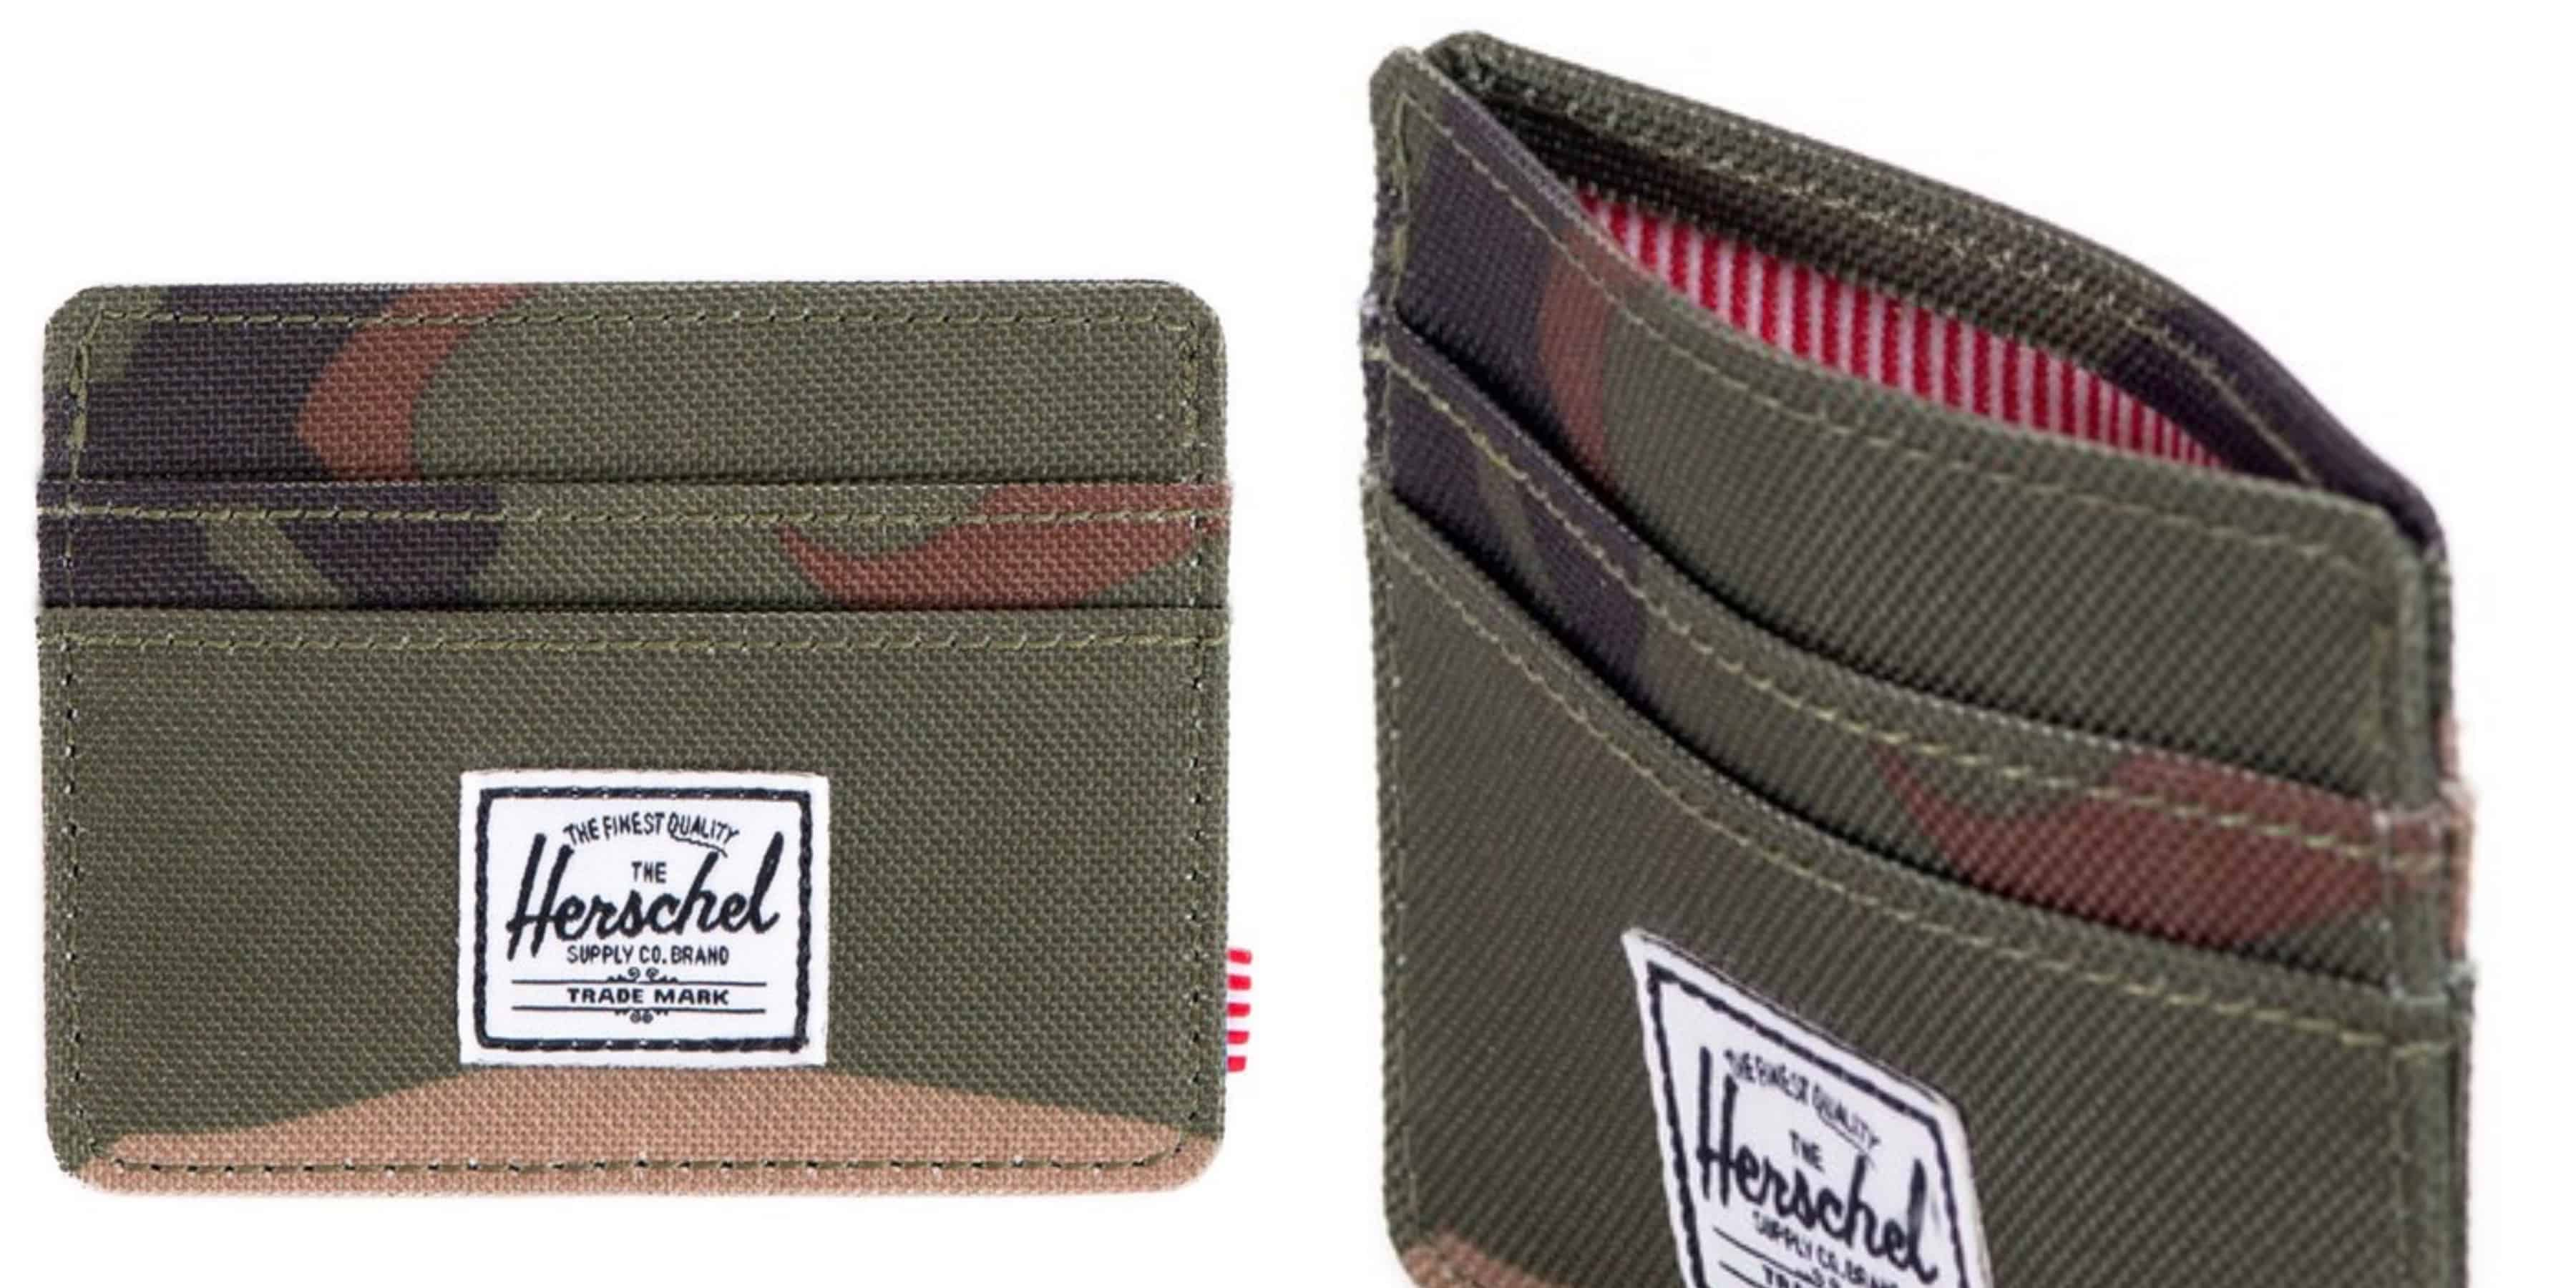 herschel-wallet-slim-wallets